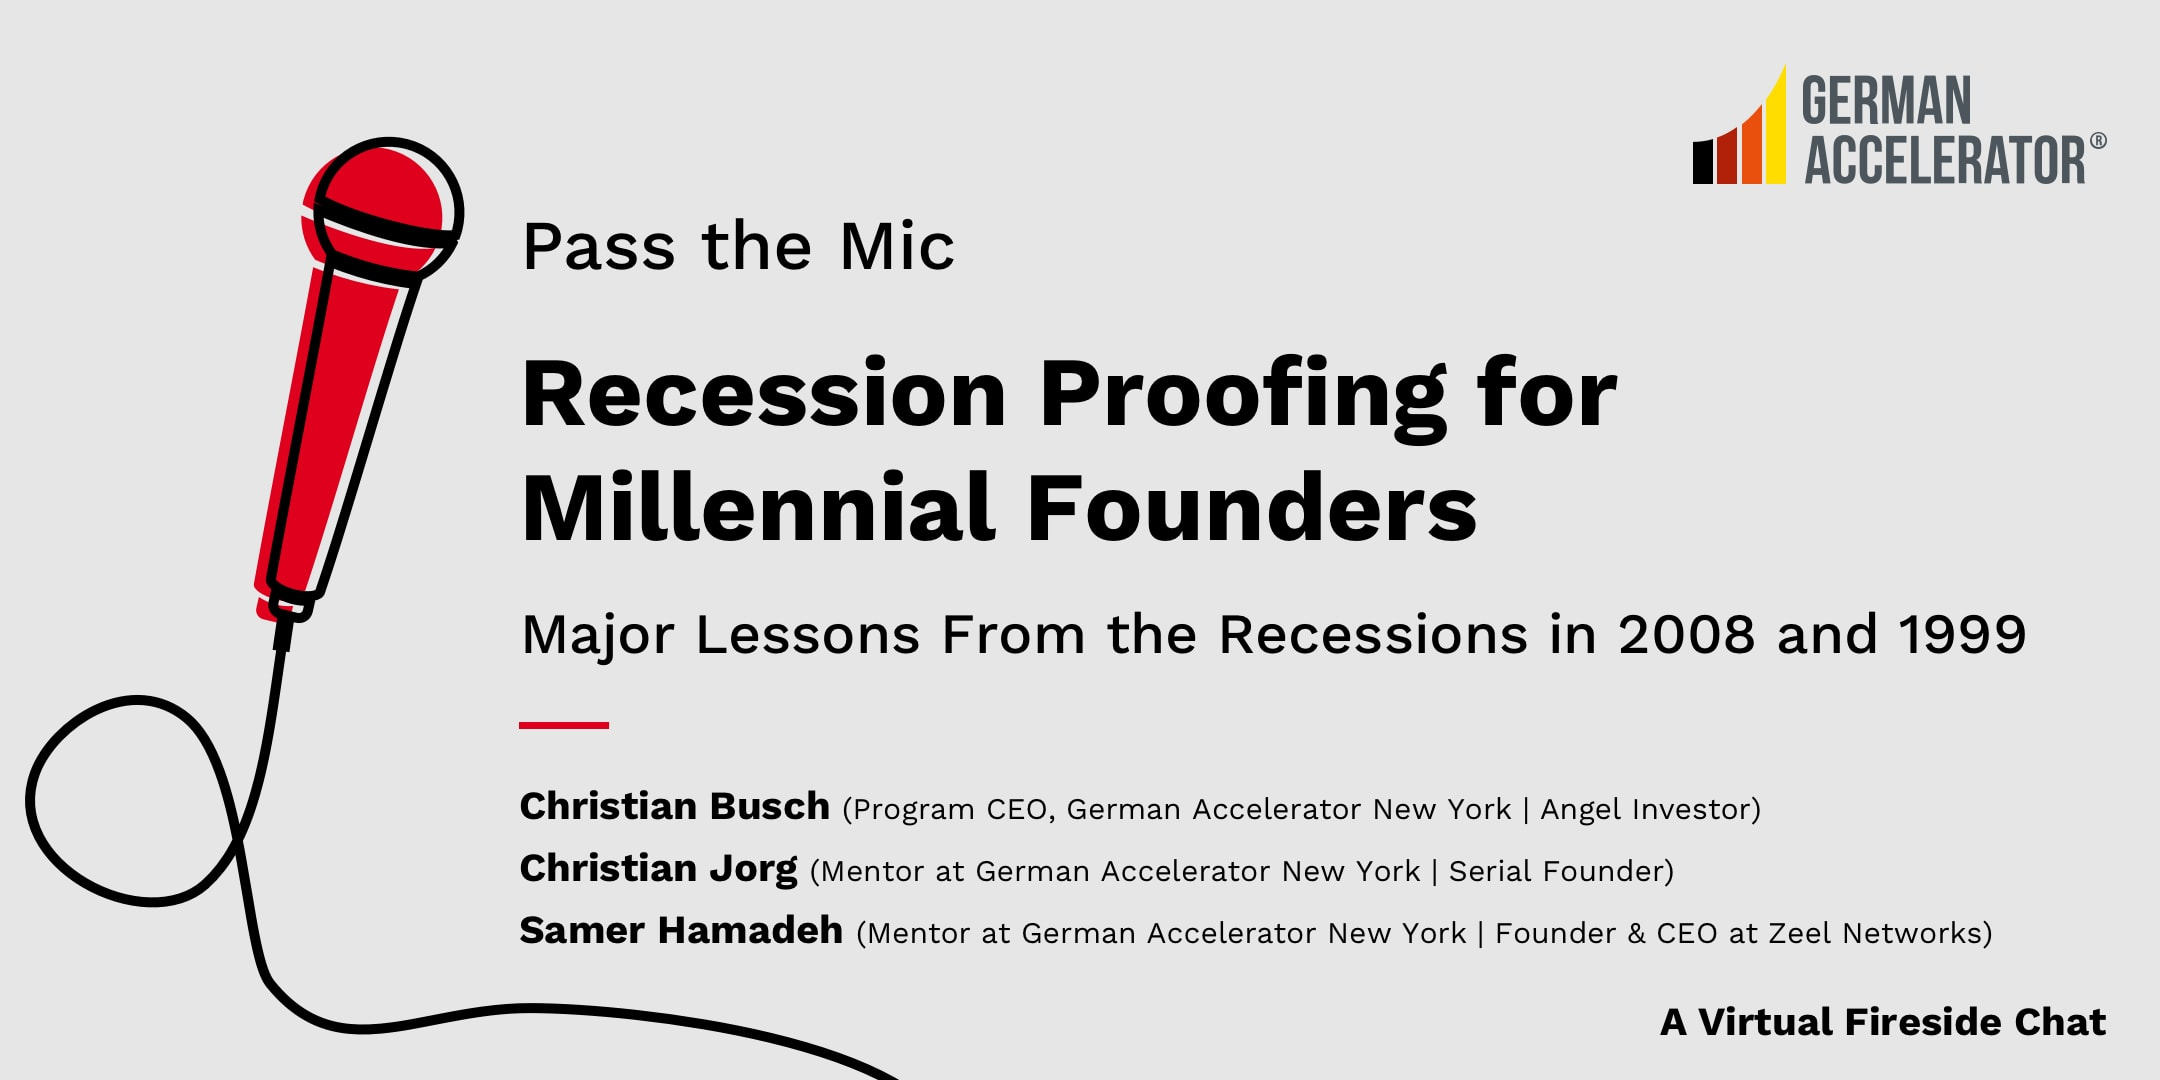 2020_04_29_Webinar_Recession Proofing for Millenial Founders_Visuals_Eventbrite